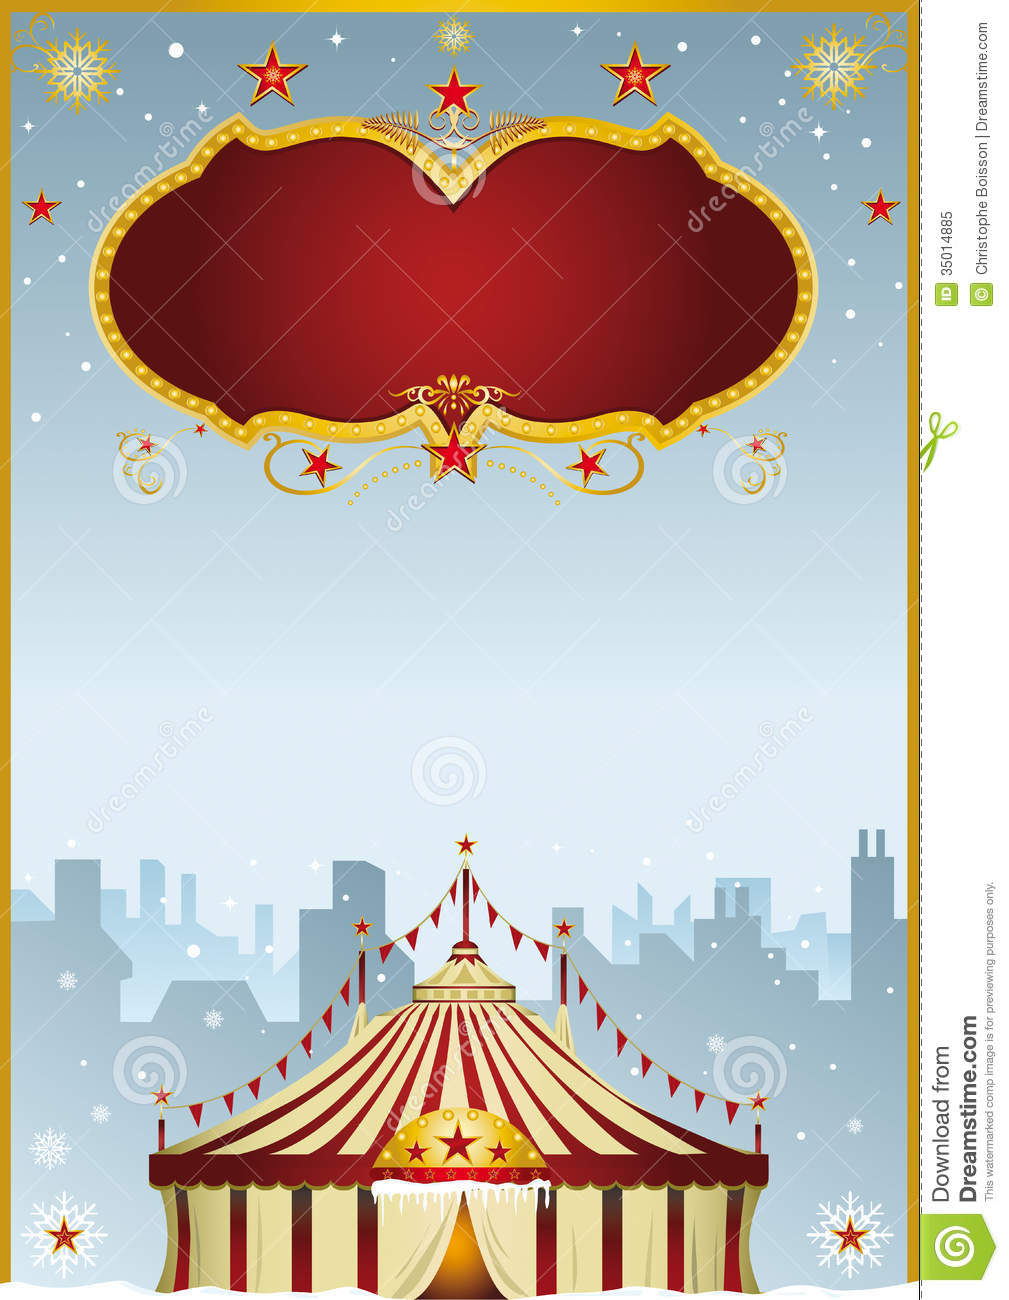 Christmas Carnival Poster.Christmas Circus In The City Stock Vector Illustration Of